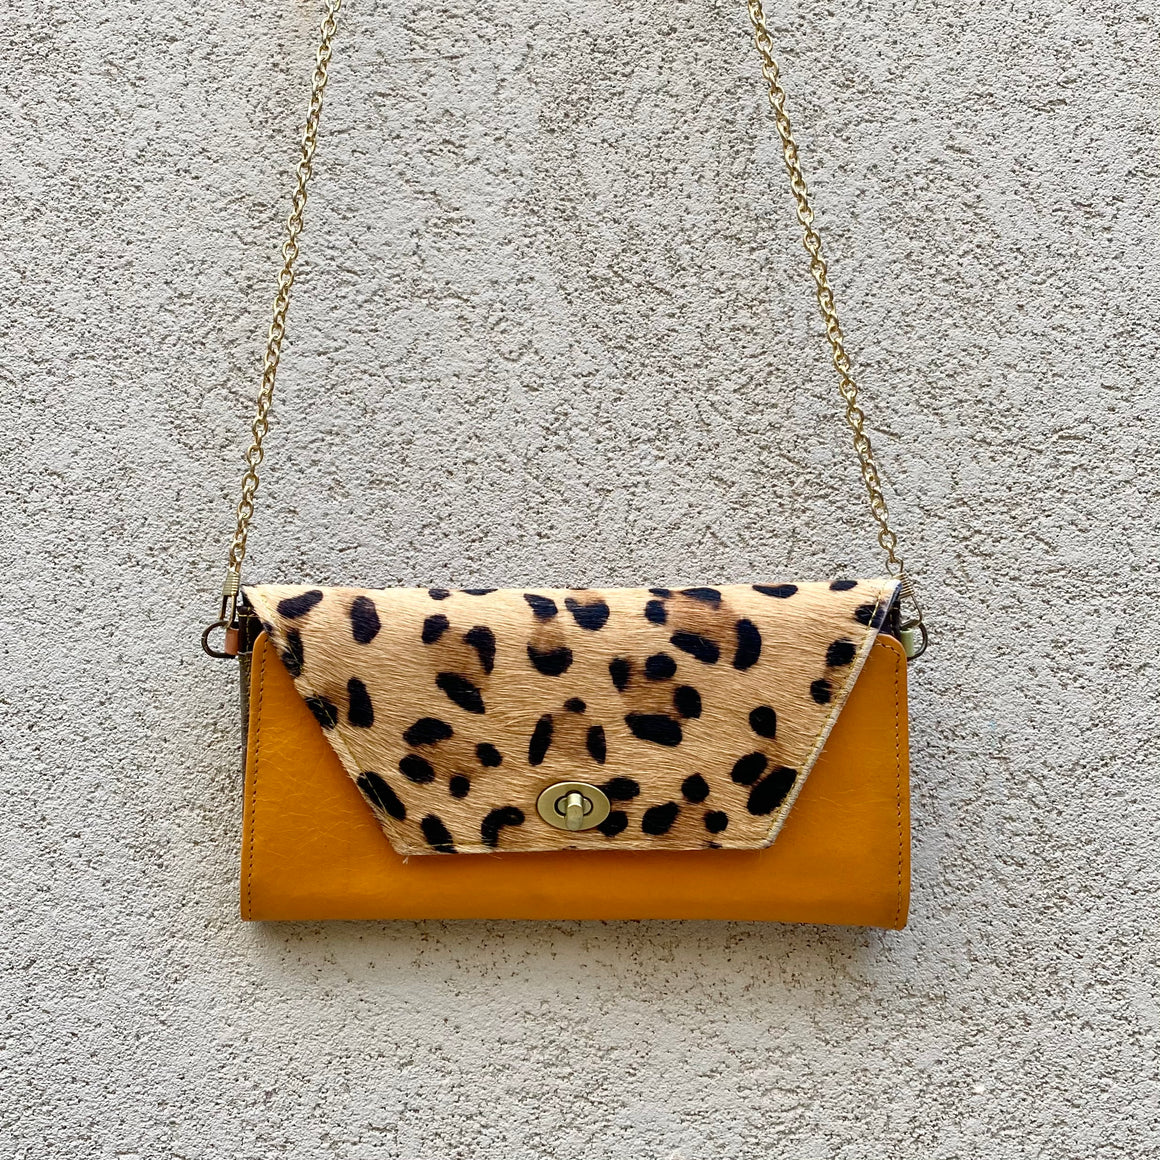 Harley Cowhide and Leather Crossbody Wallet Clutch - Apricot Tan, Leopard, wallets - KITTY KAT,